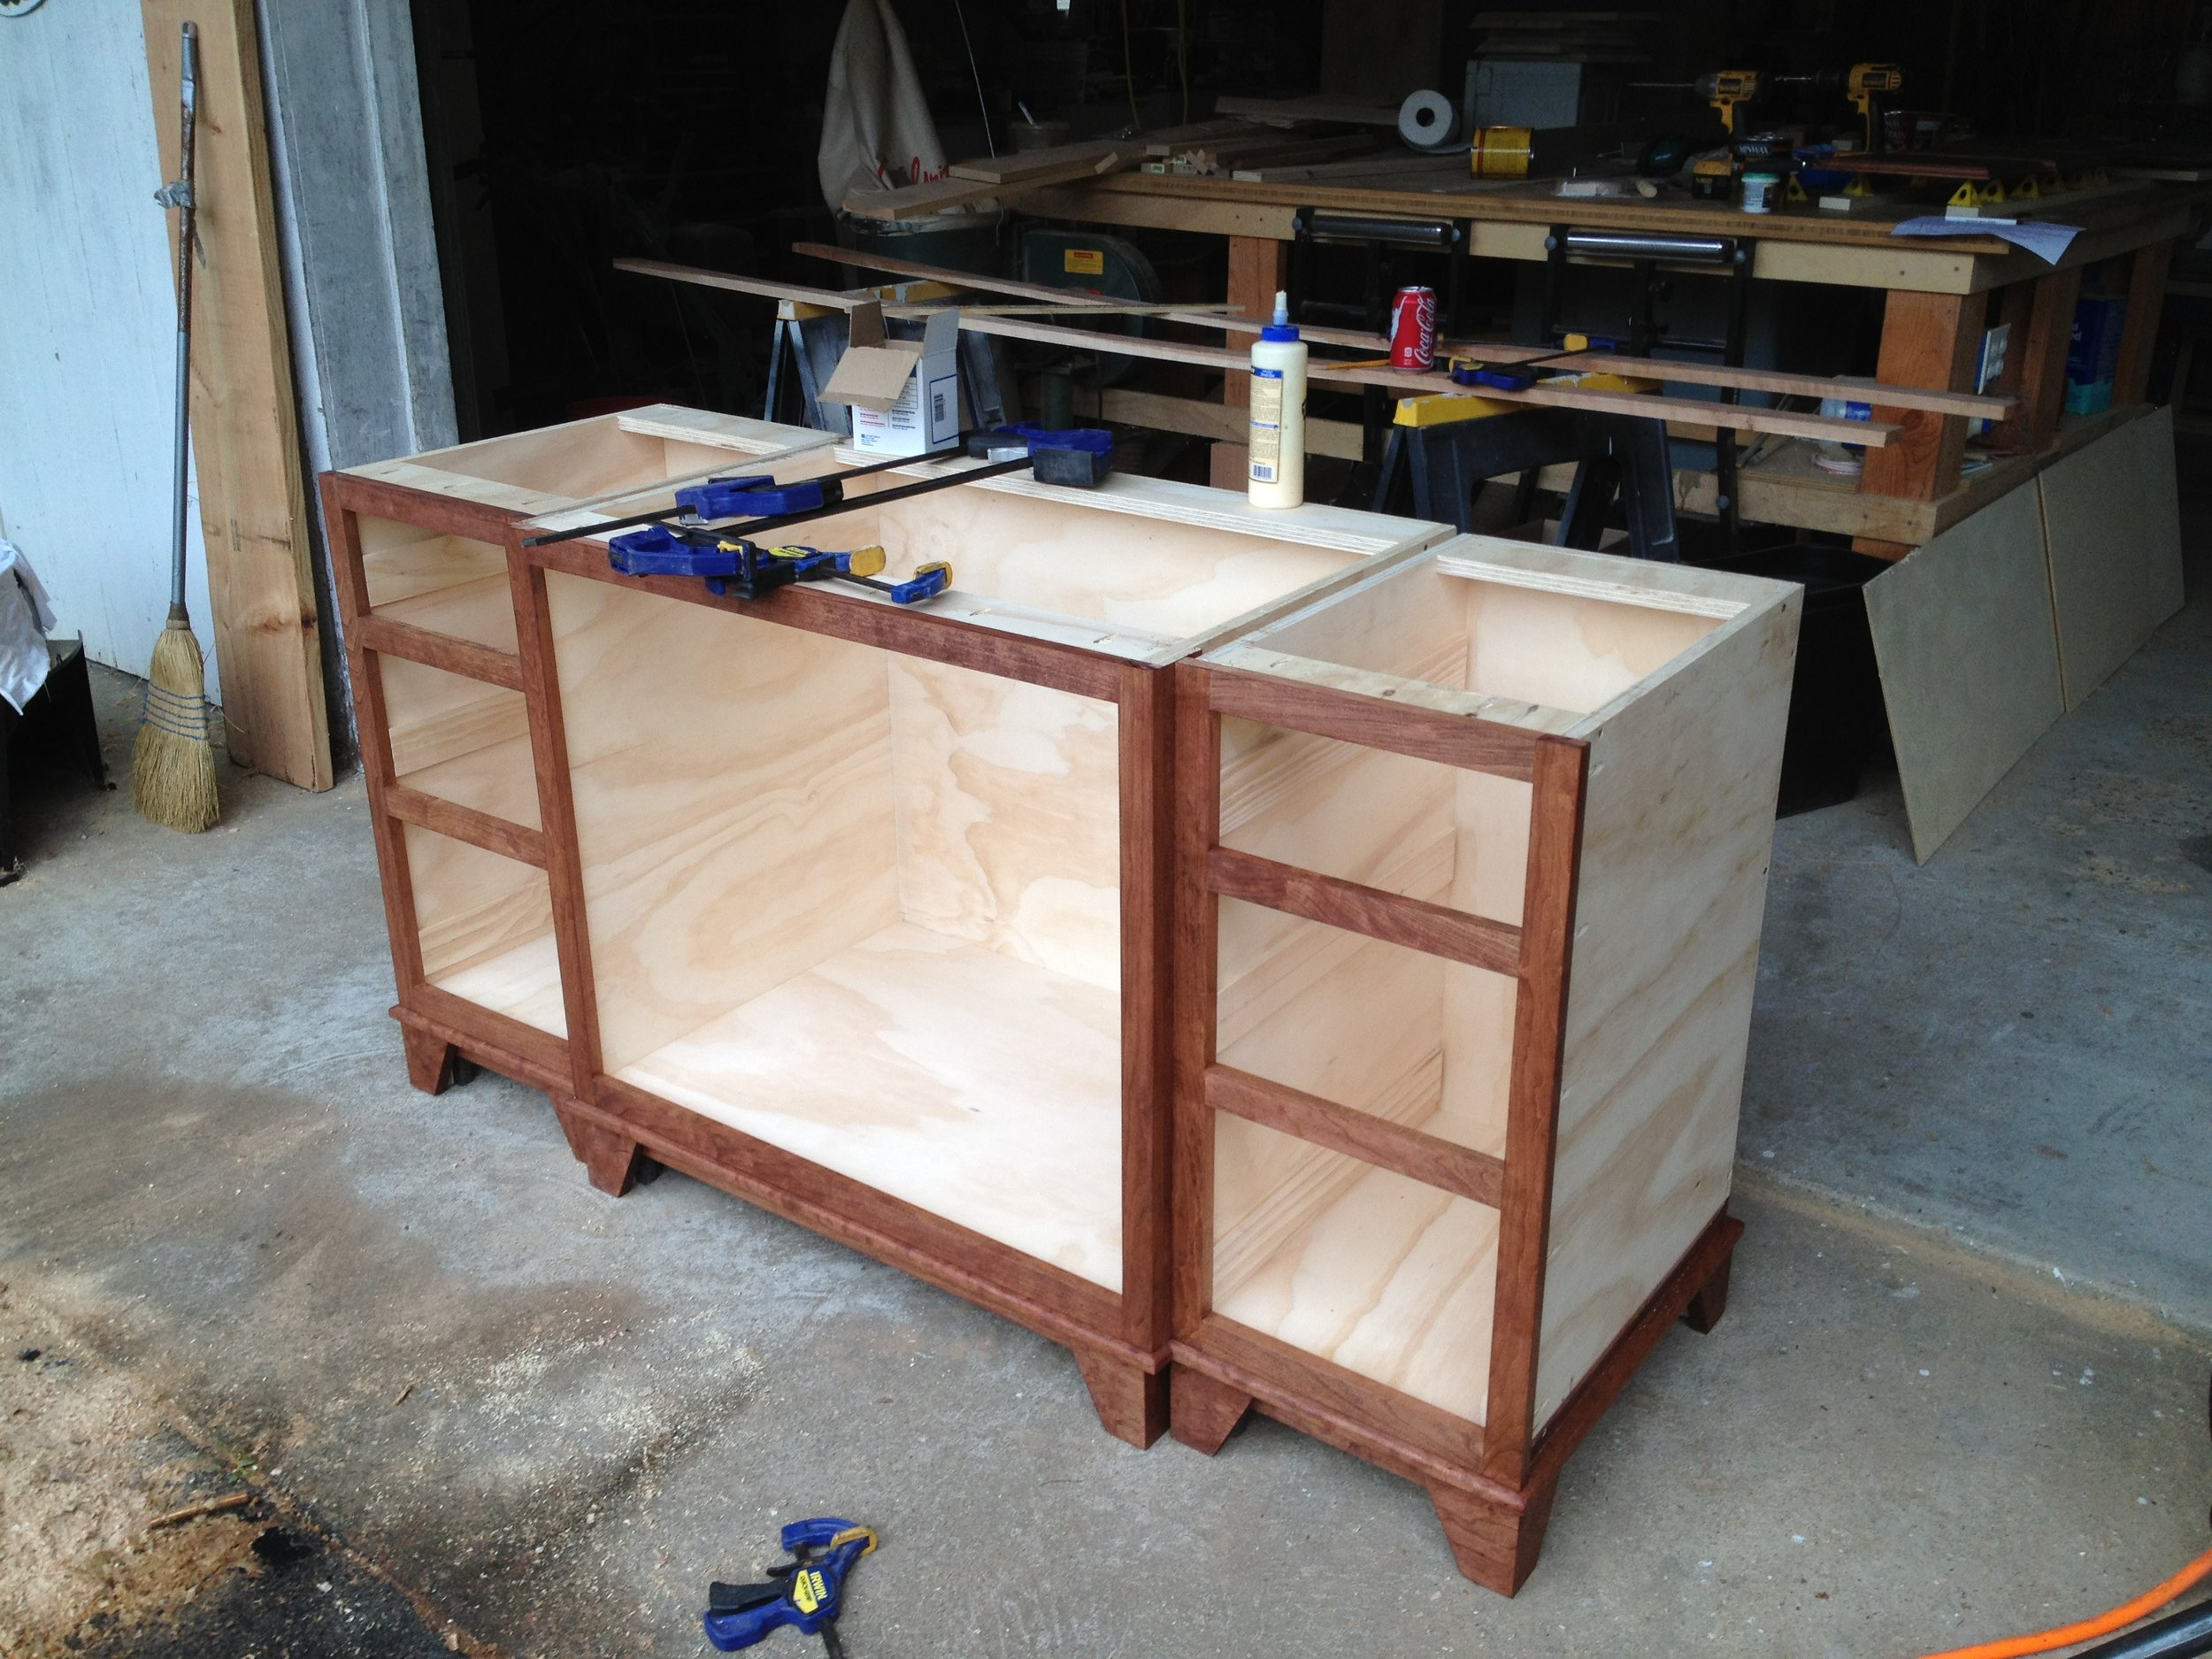 As part of a larger bathroom renovation, I was commissioned to make a custom cherry vanity. Here the base cabinets have been assembled and had the face frames attached. All the cherry face frame and drawer parts were milled down from rough lumber in my shop.